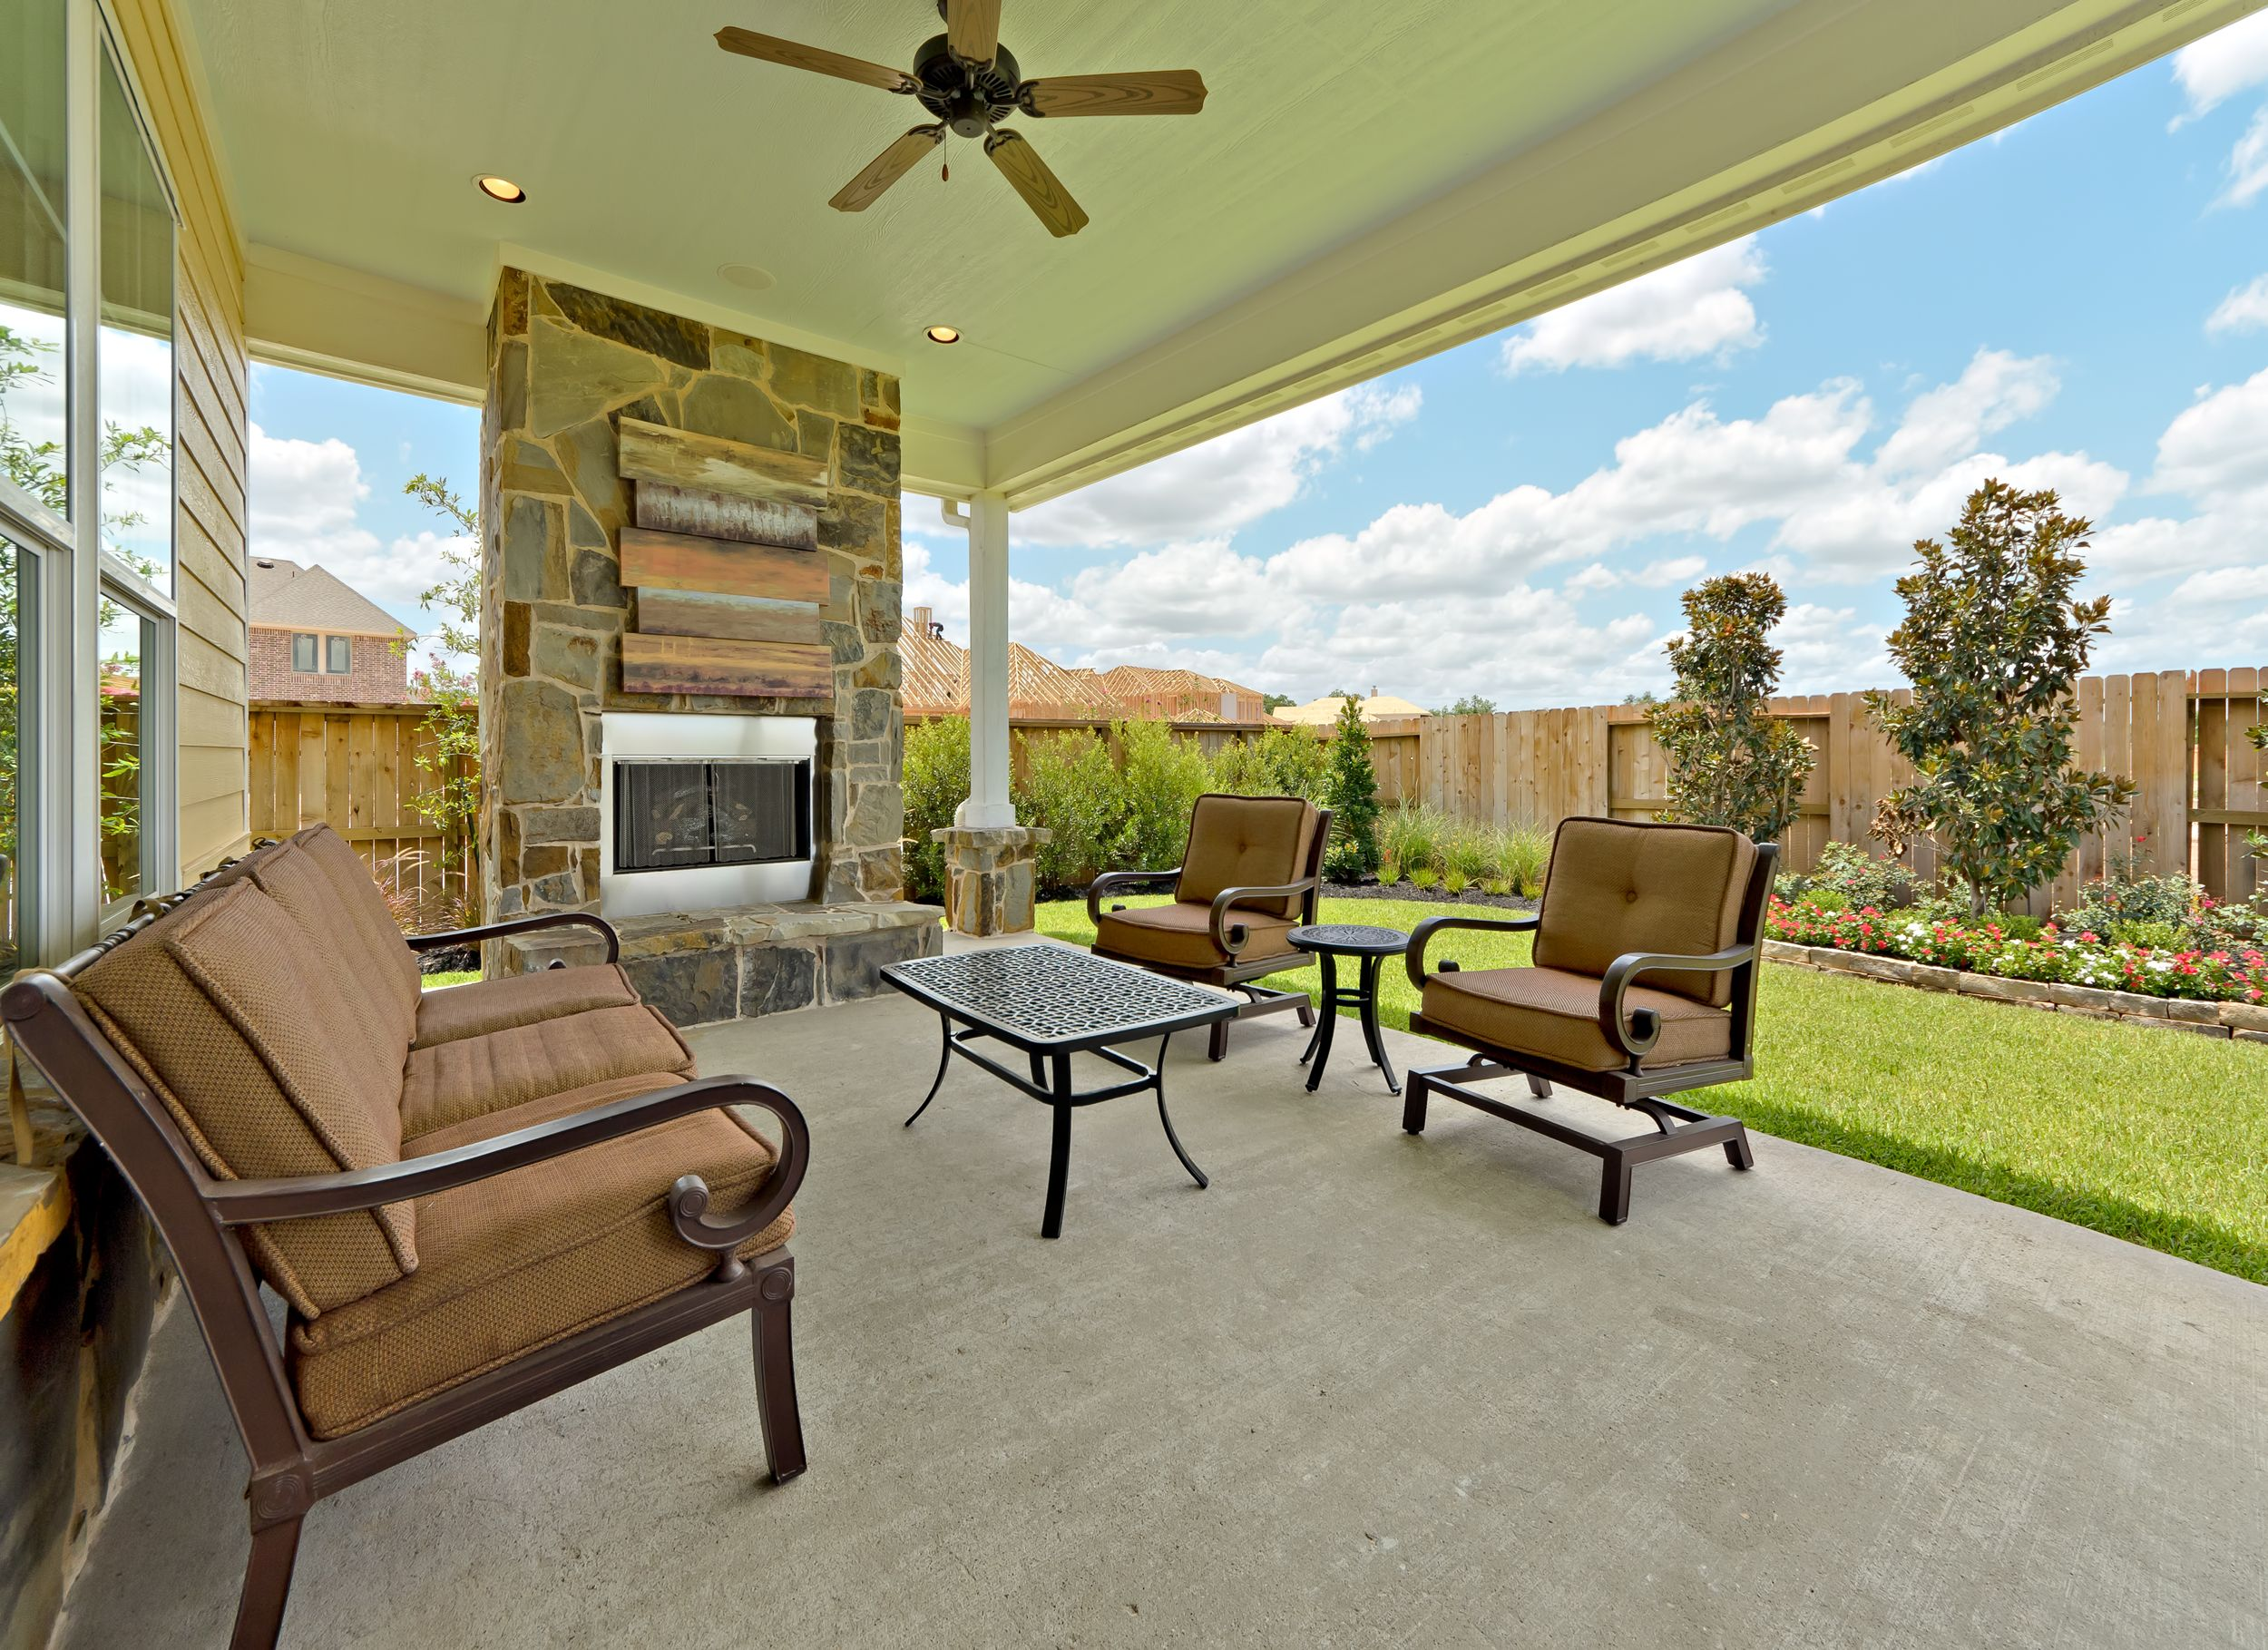 Sienna American Classic Outdoor Patio Outdoor living